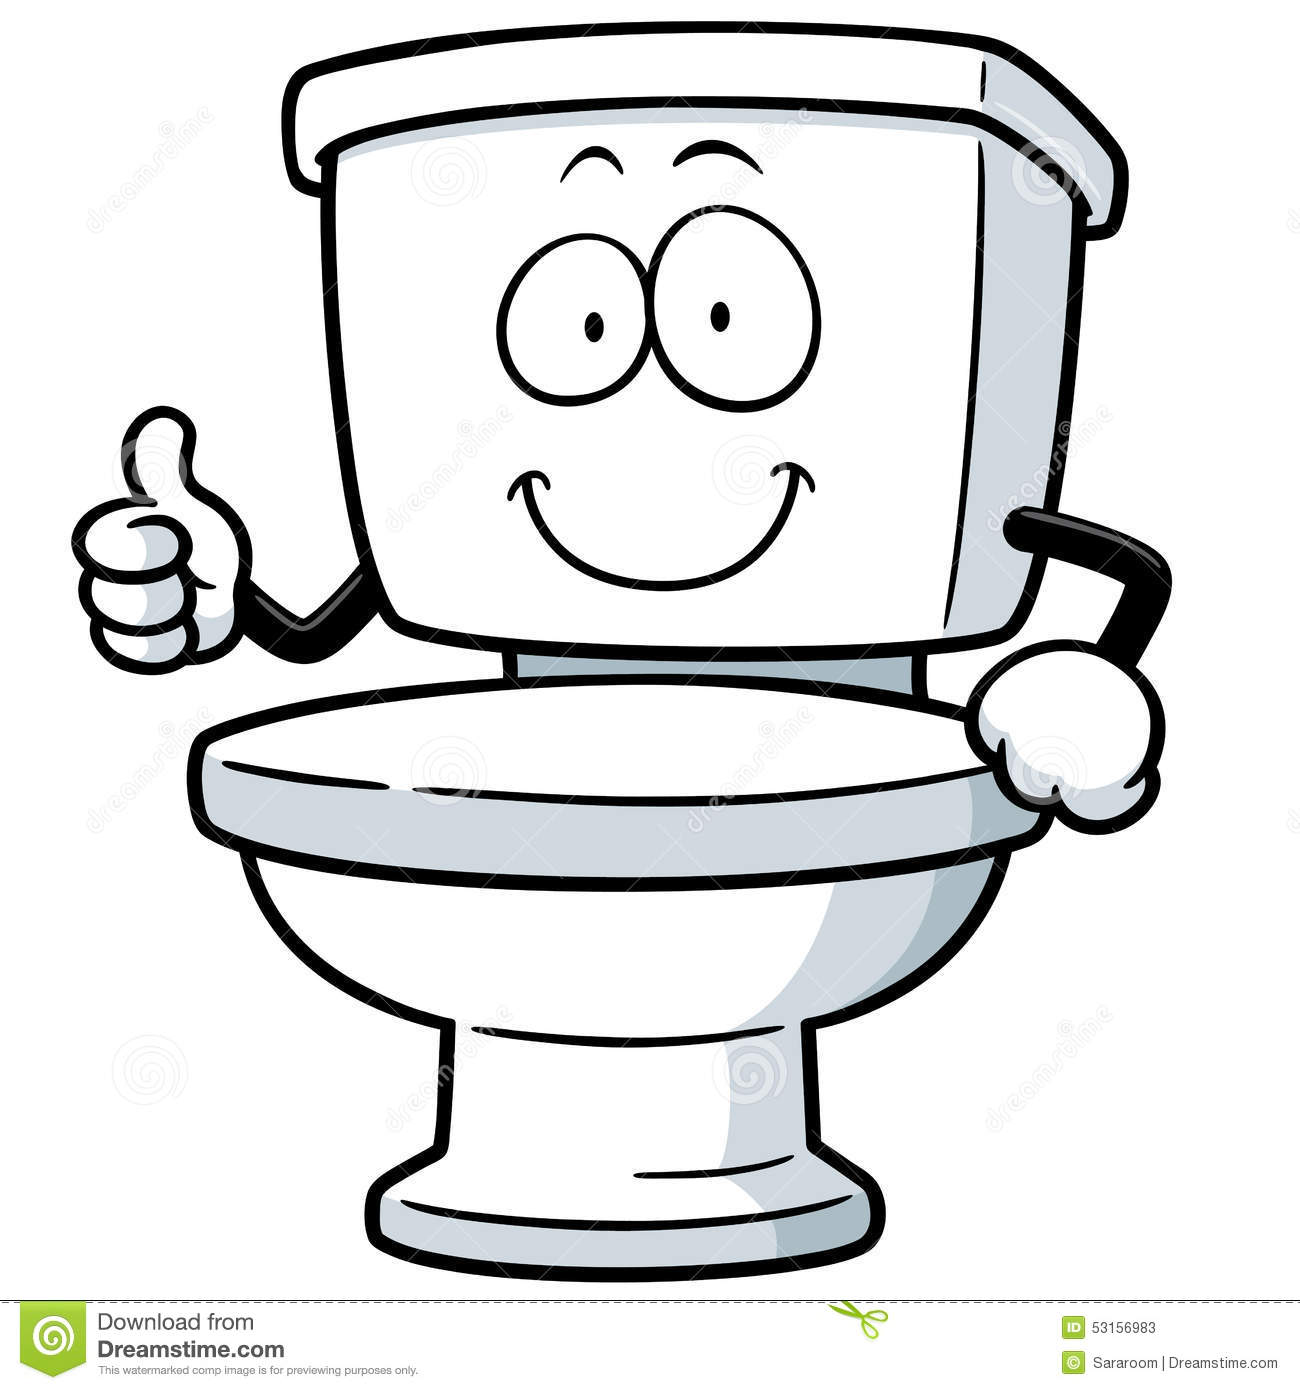 Clip Art Clipart Toilet cartoon toilet clipart kid vector illustration of toilet